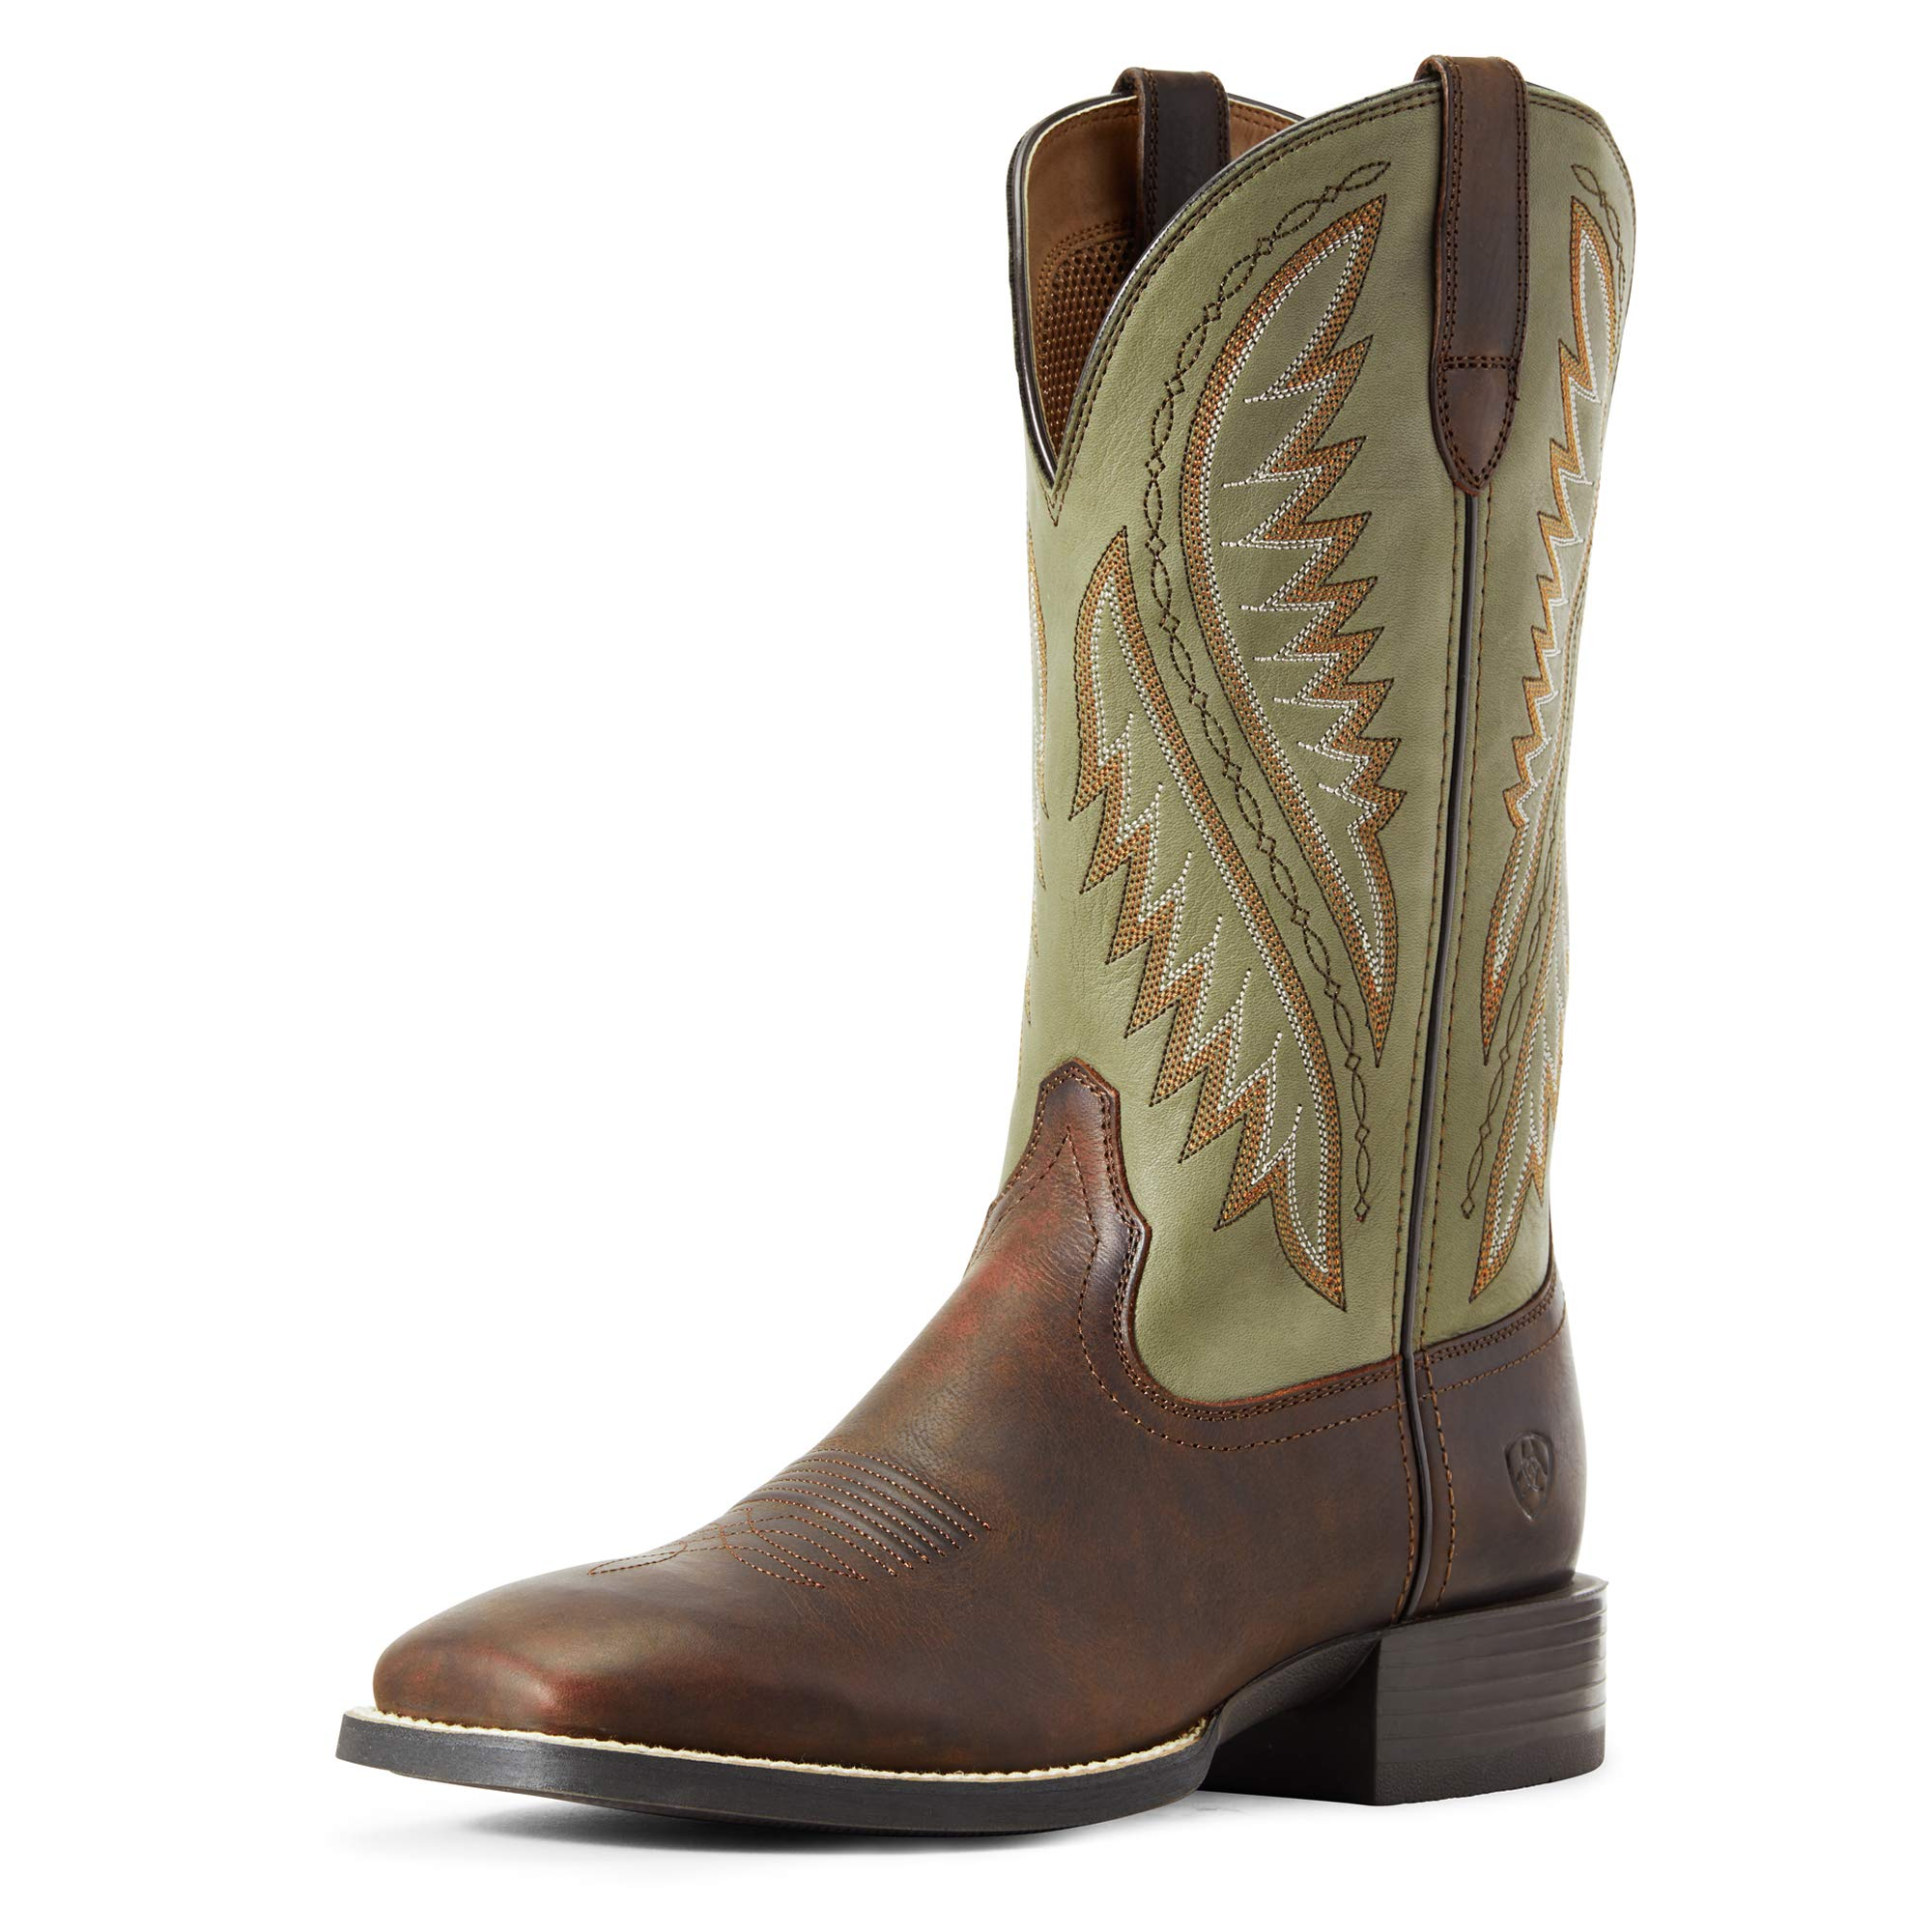 ARIAT Men's Sport Stonewall Western Boot Barley Brown/Olive Green Size 9 D/Medium Us by ARIAT